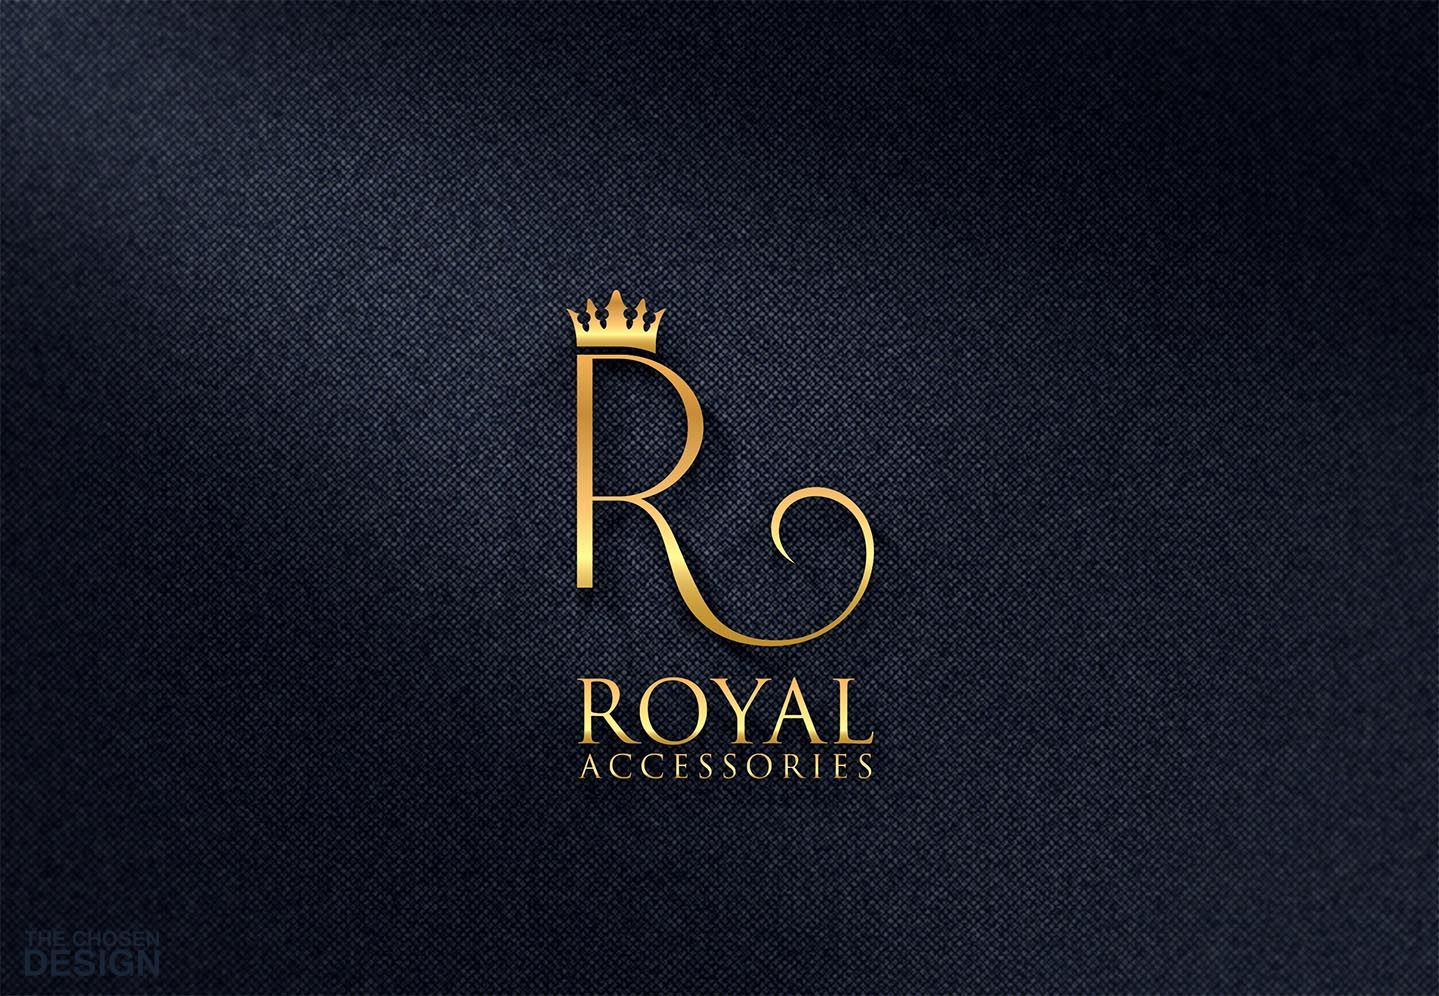 Royal Bank of Canada Updates Brand Name and Logo  RBC